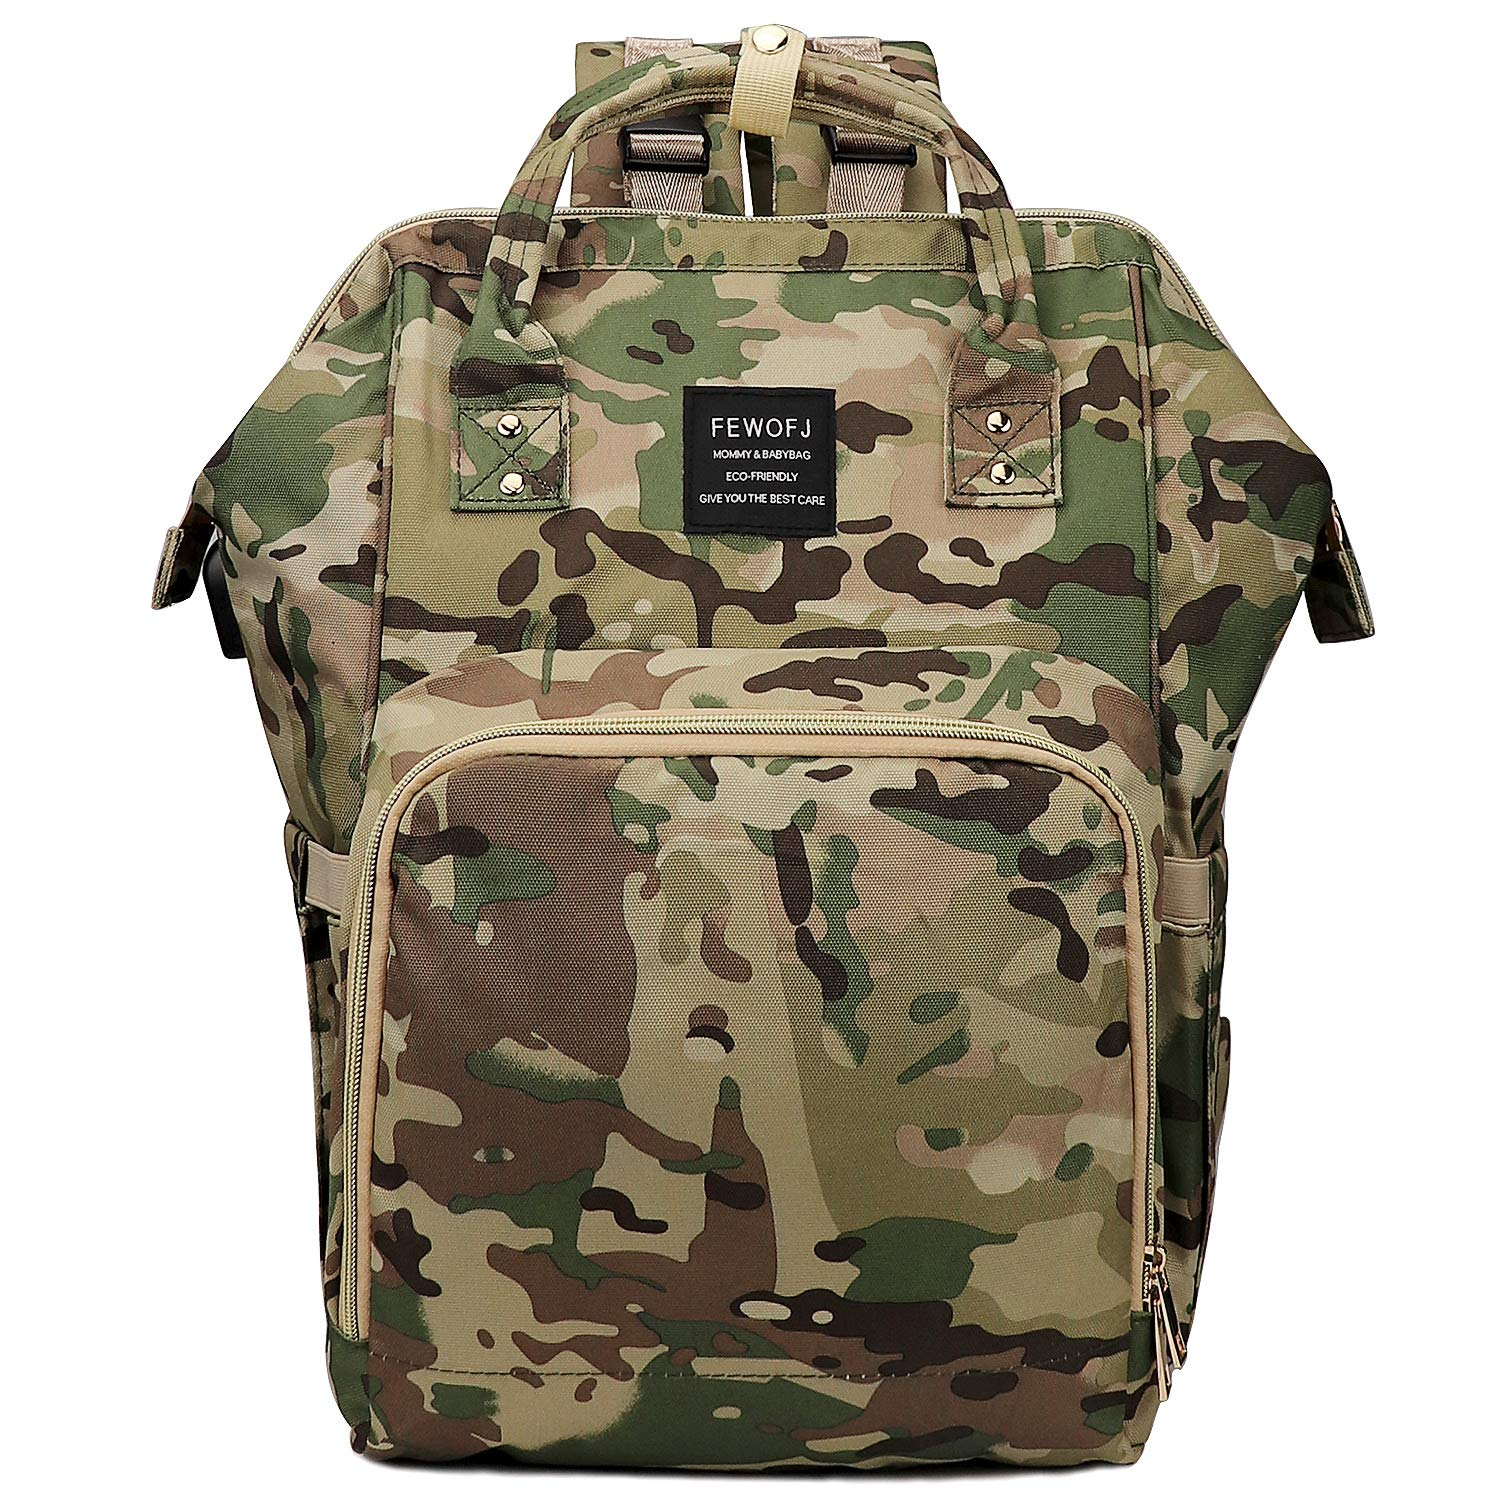 Camo Baby Boy Diaper Bag Backpack for Dad, Large Tactical Nappy Bags for Mens Travel